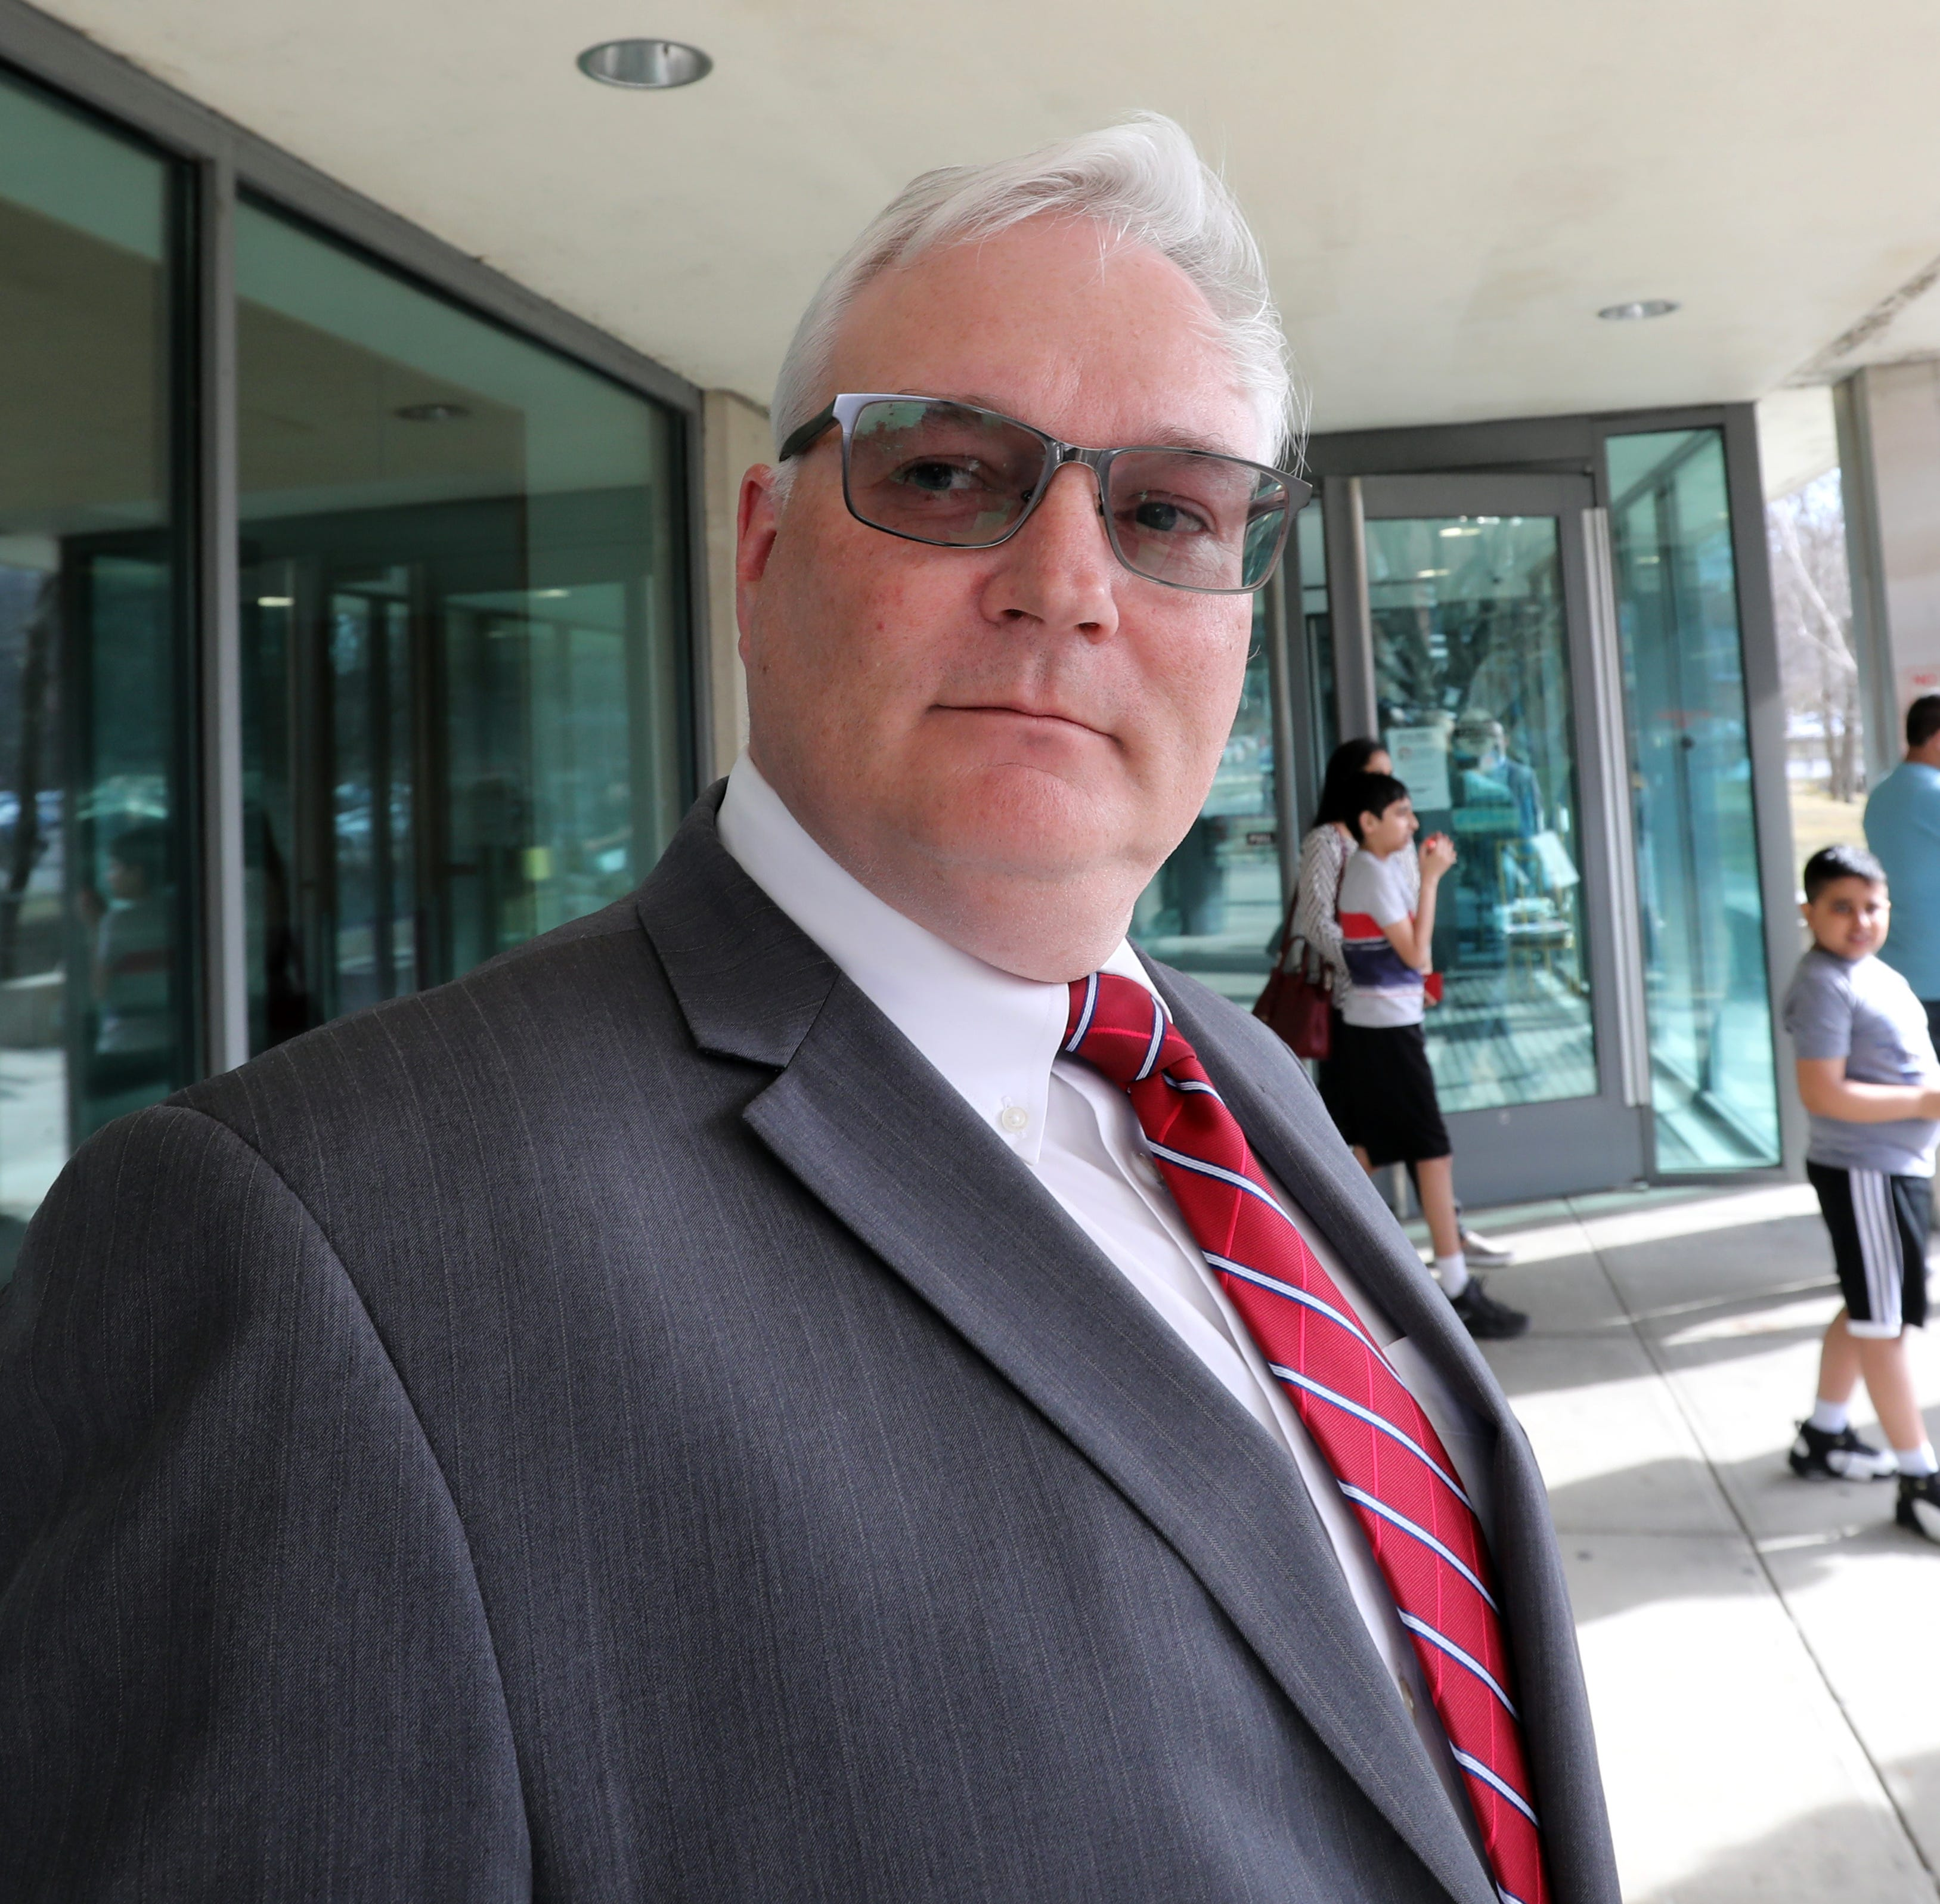 Measles: Judge Thorsen to issue ruling Friday on challenge to Rockland's emergency ban